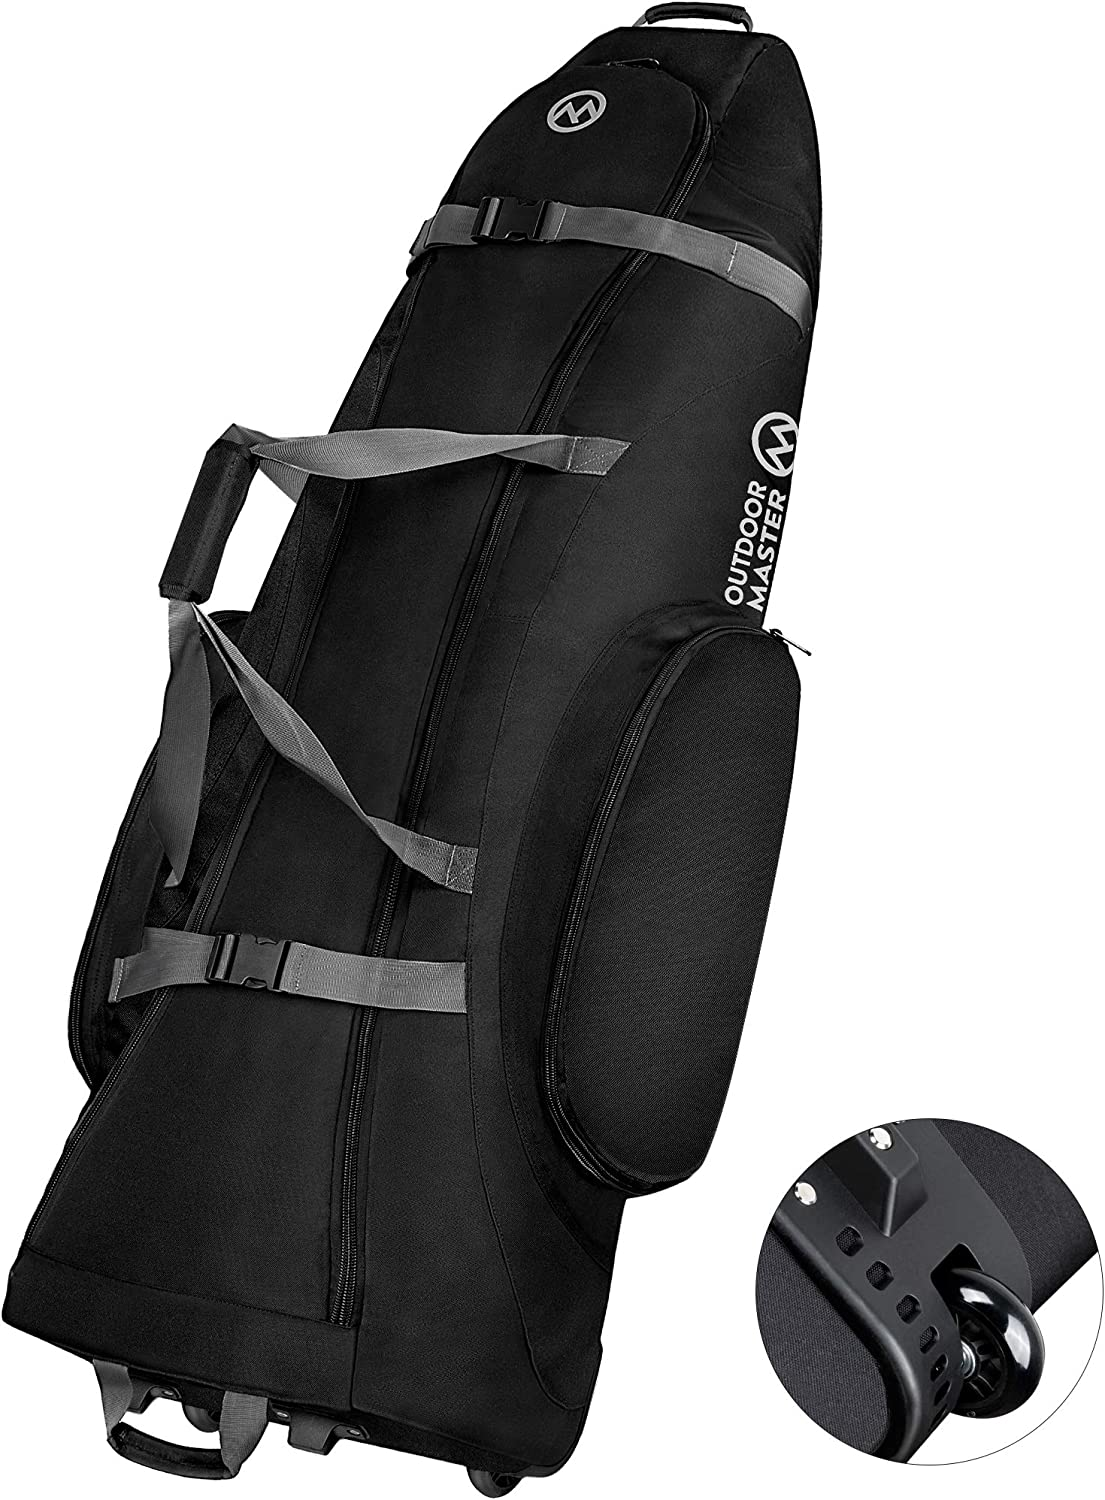 OutdoorMaster Padded Golf Club Travel Bag with Wheels, 900D Heavy Duty Oxford Waterproof -Alligators